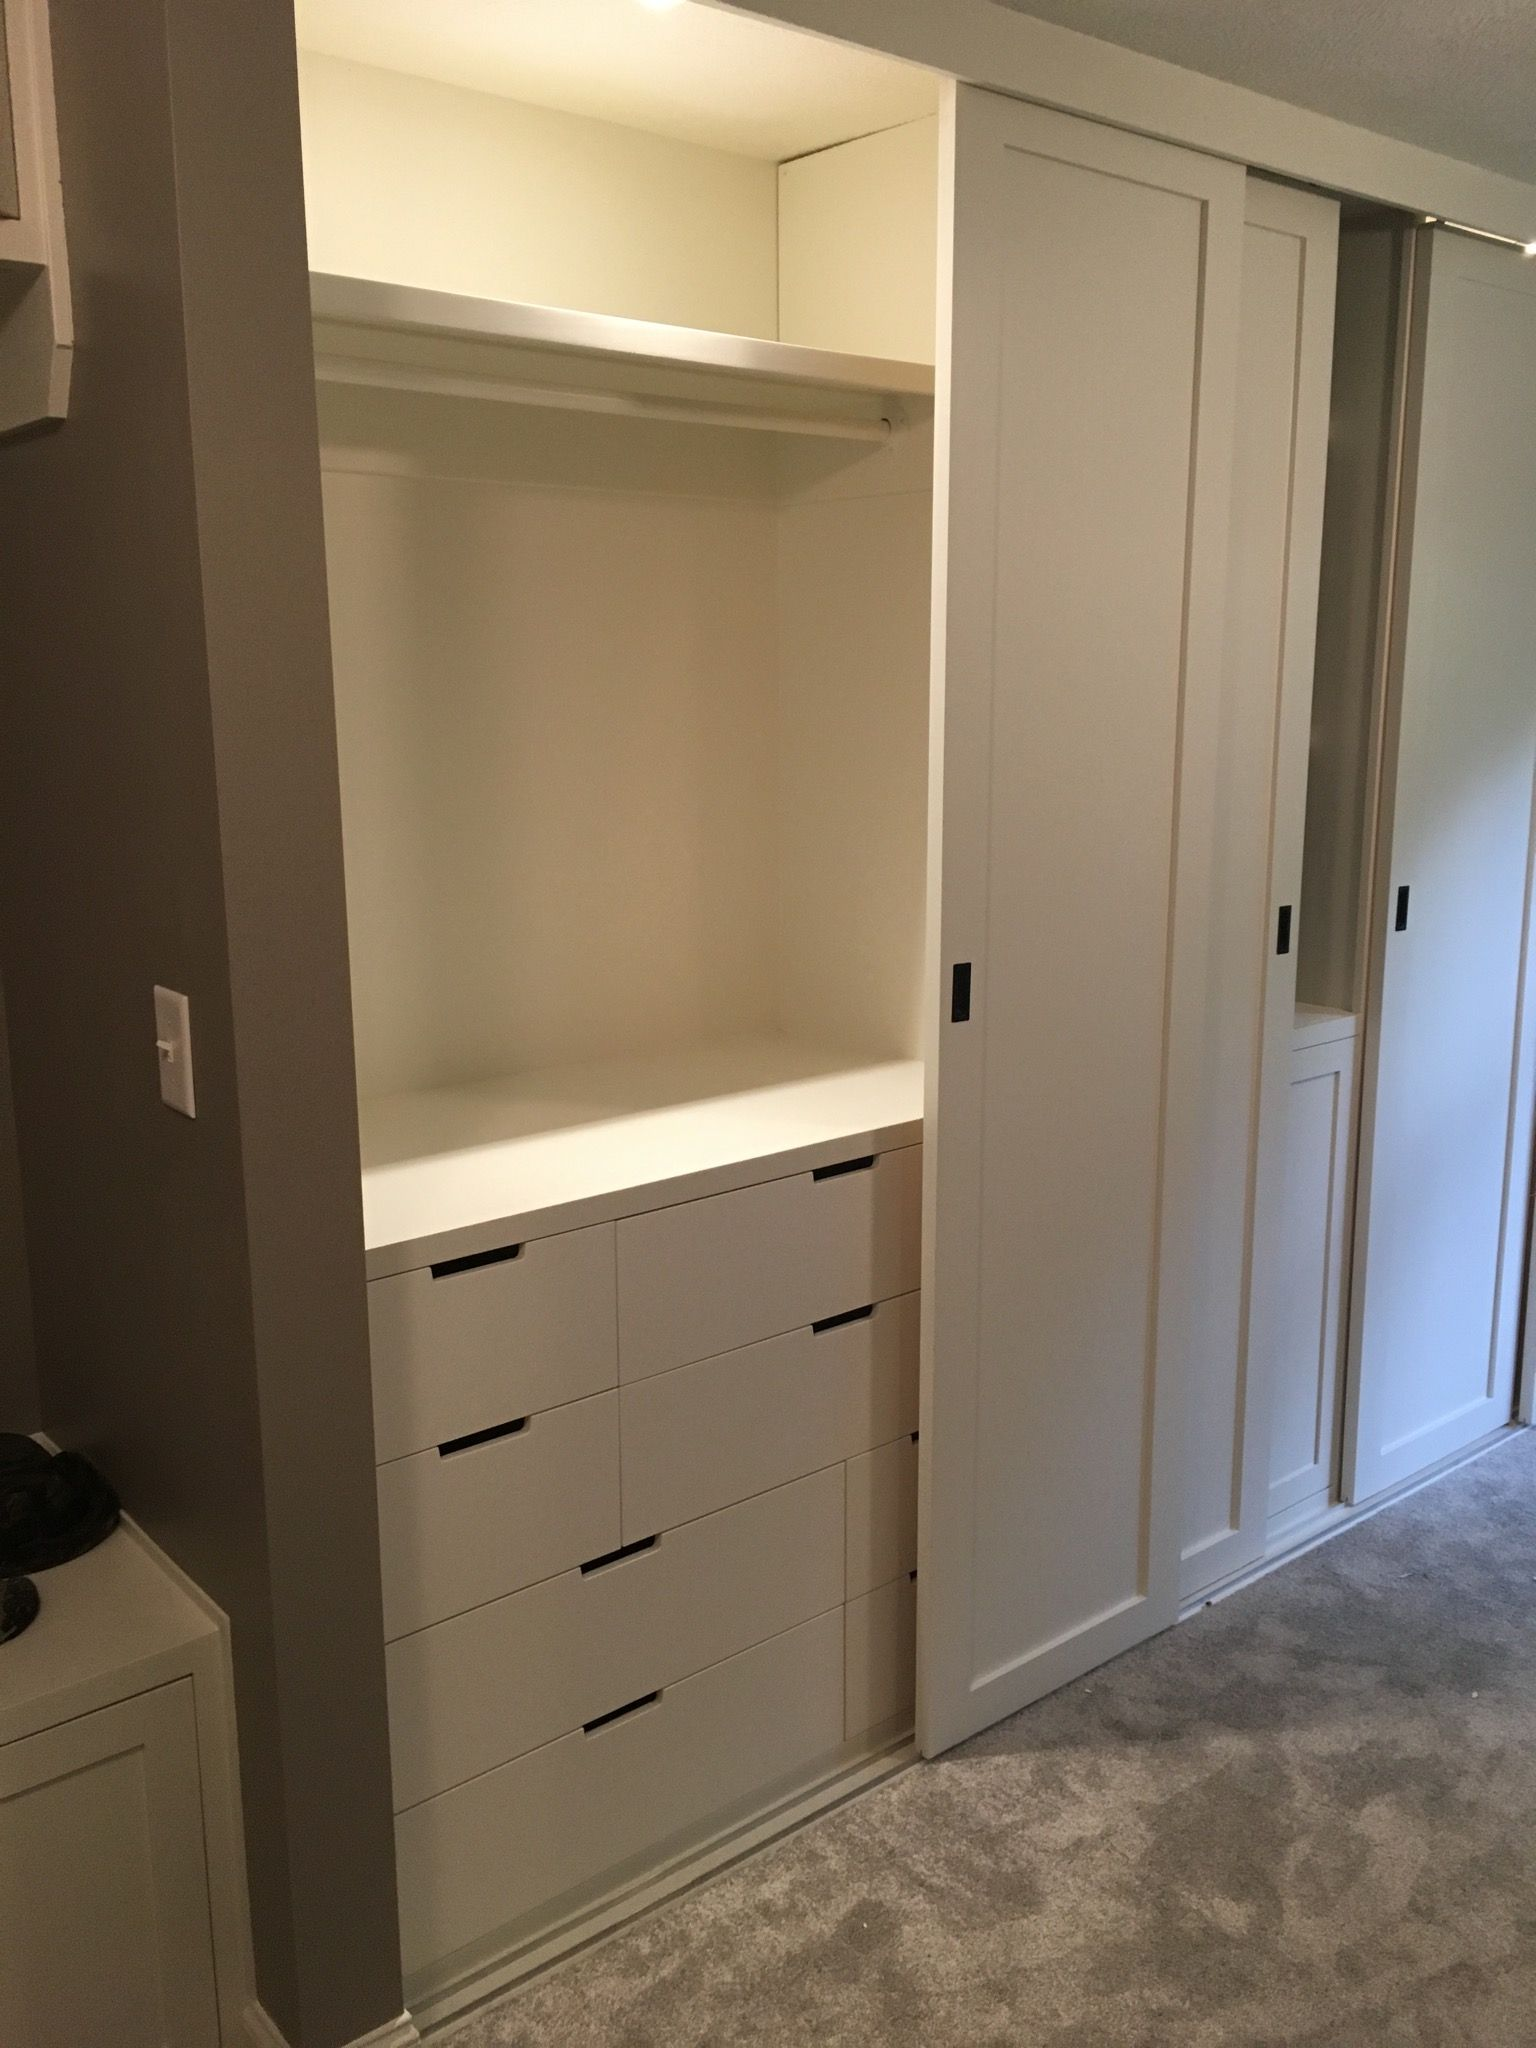 Bedroom Built In Closets Ikea Nordli Dressers Within Built In Closet Sliding Ceiling